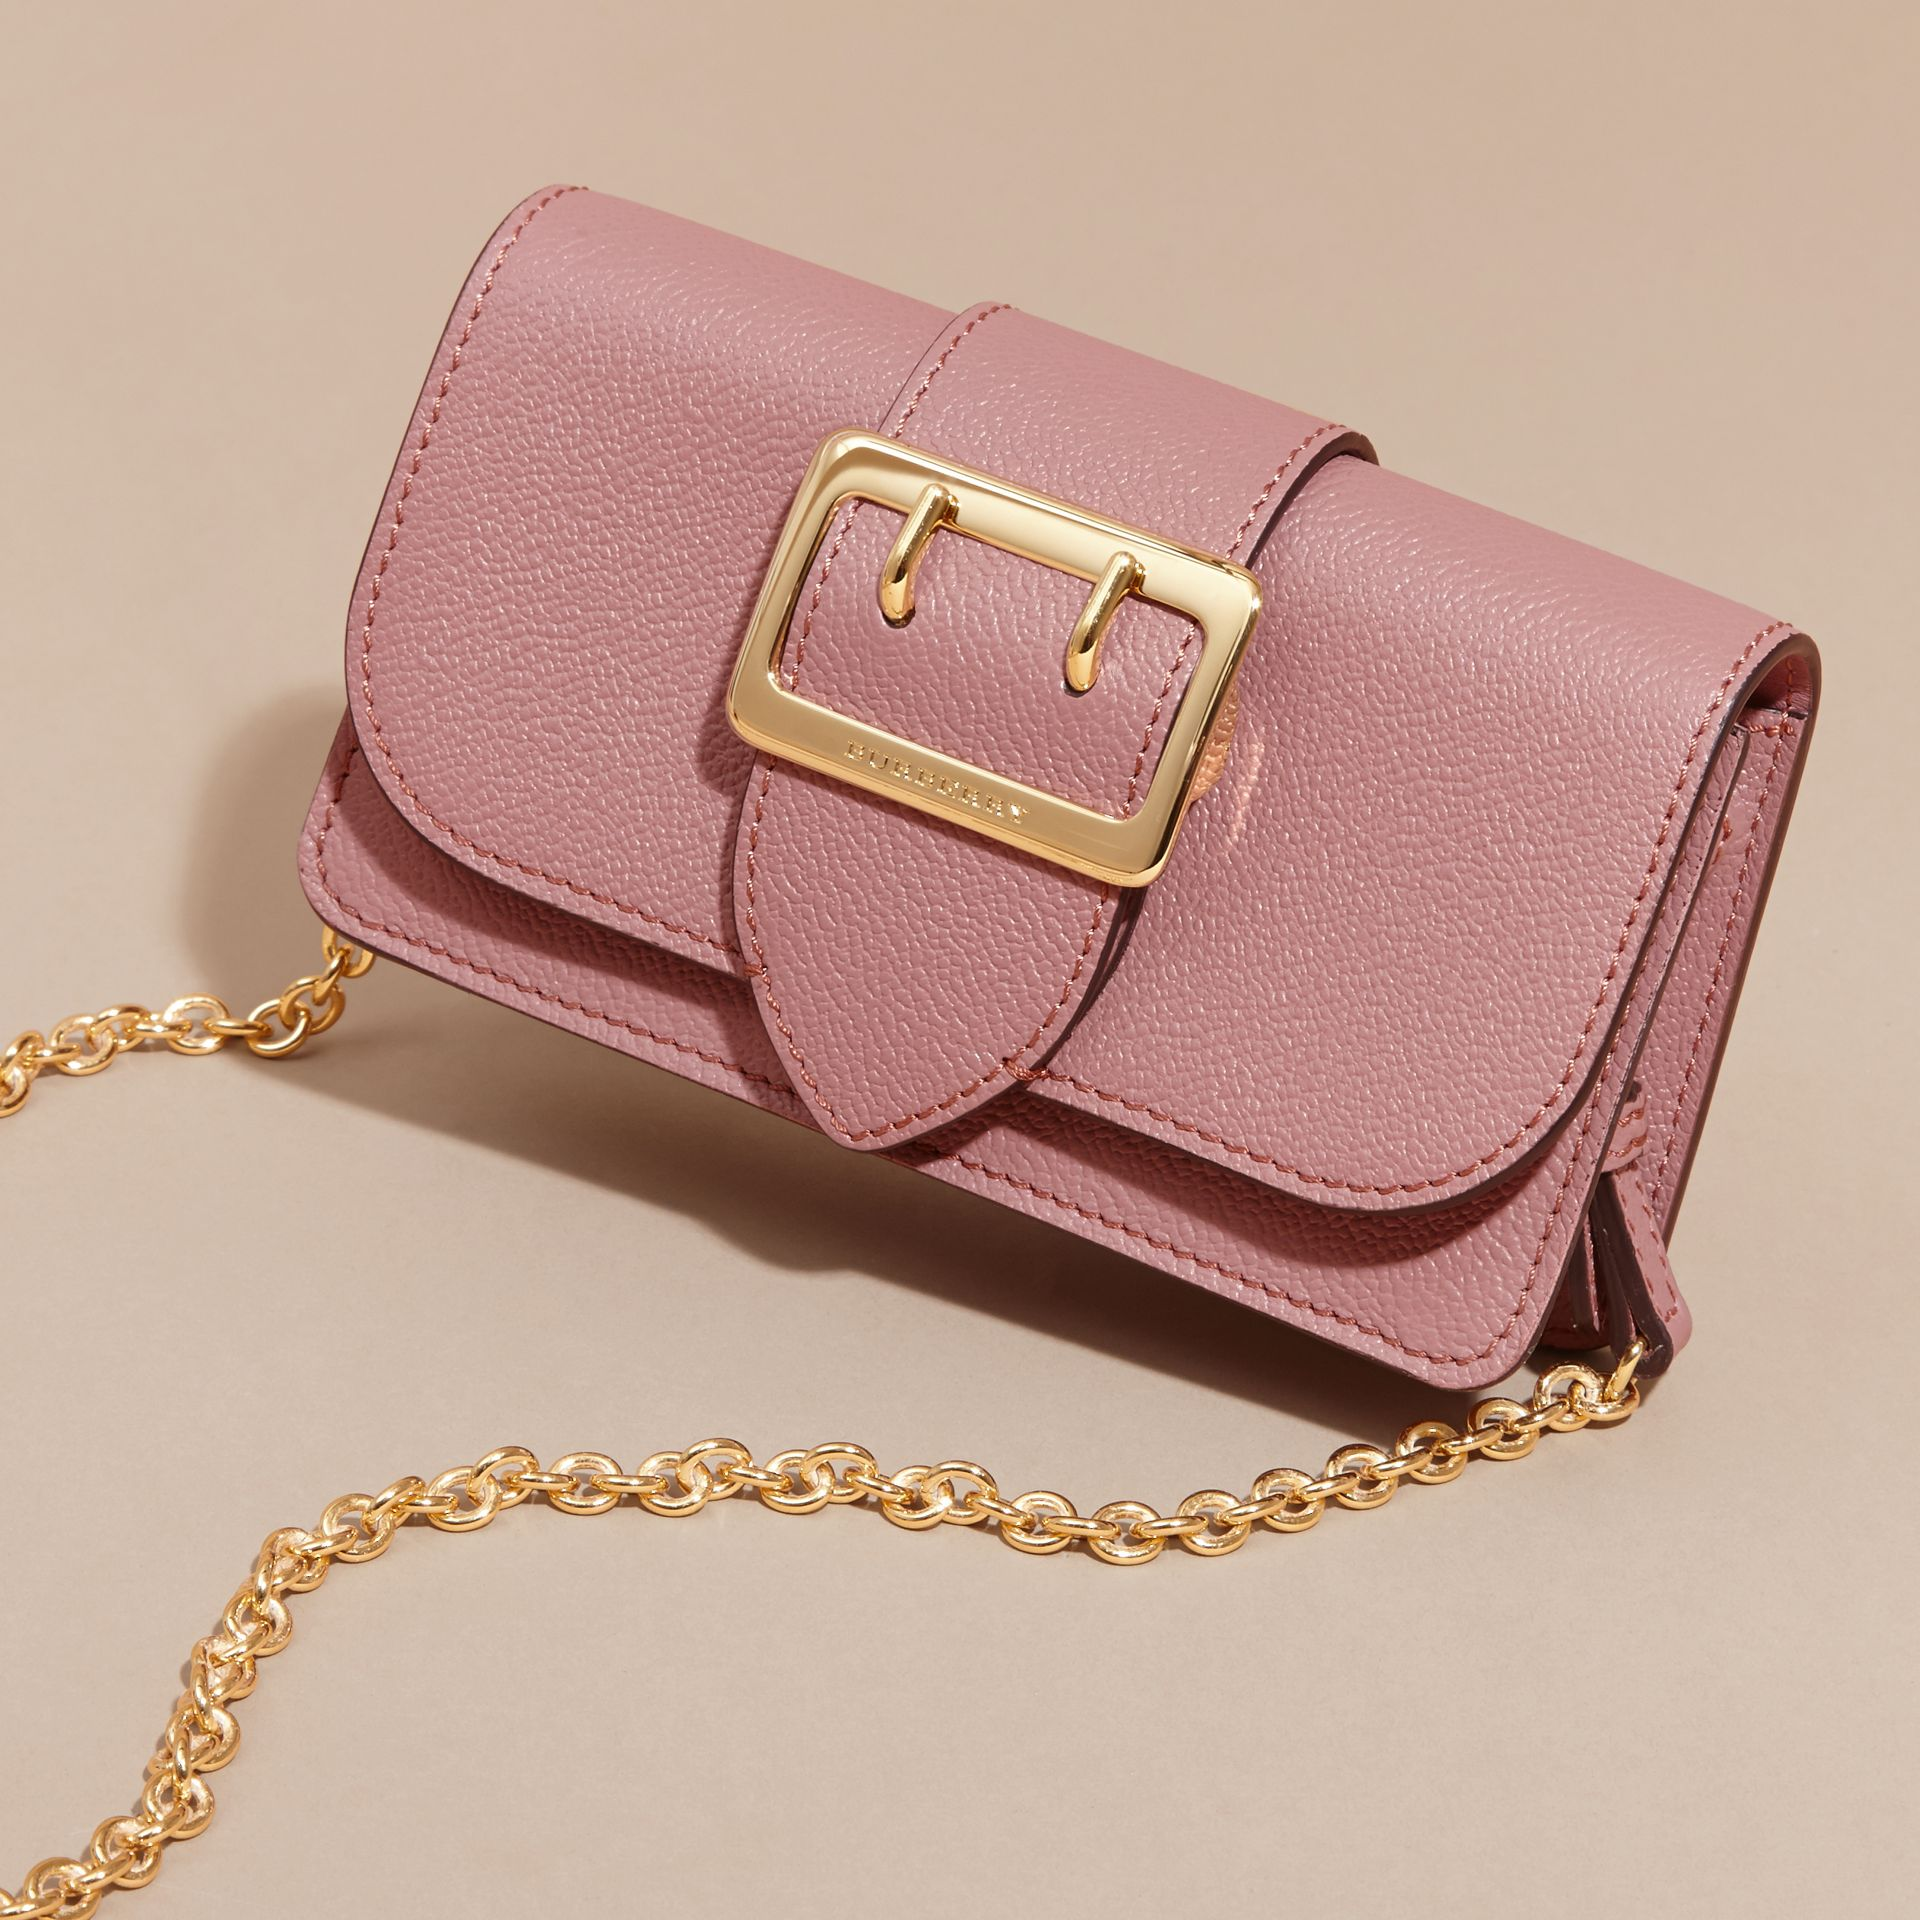 The Mini Buckle Bag in Grainy Leather in Dusty Pink - Women | Burberry Singapore - gallery image 8